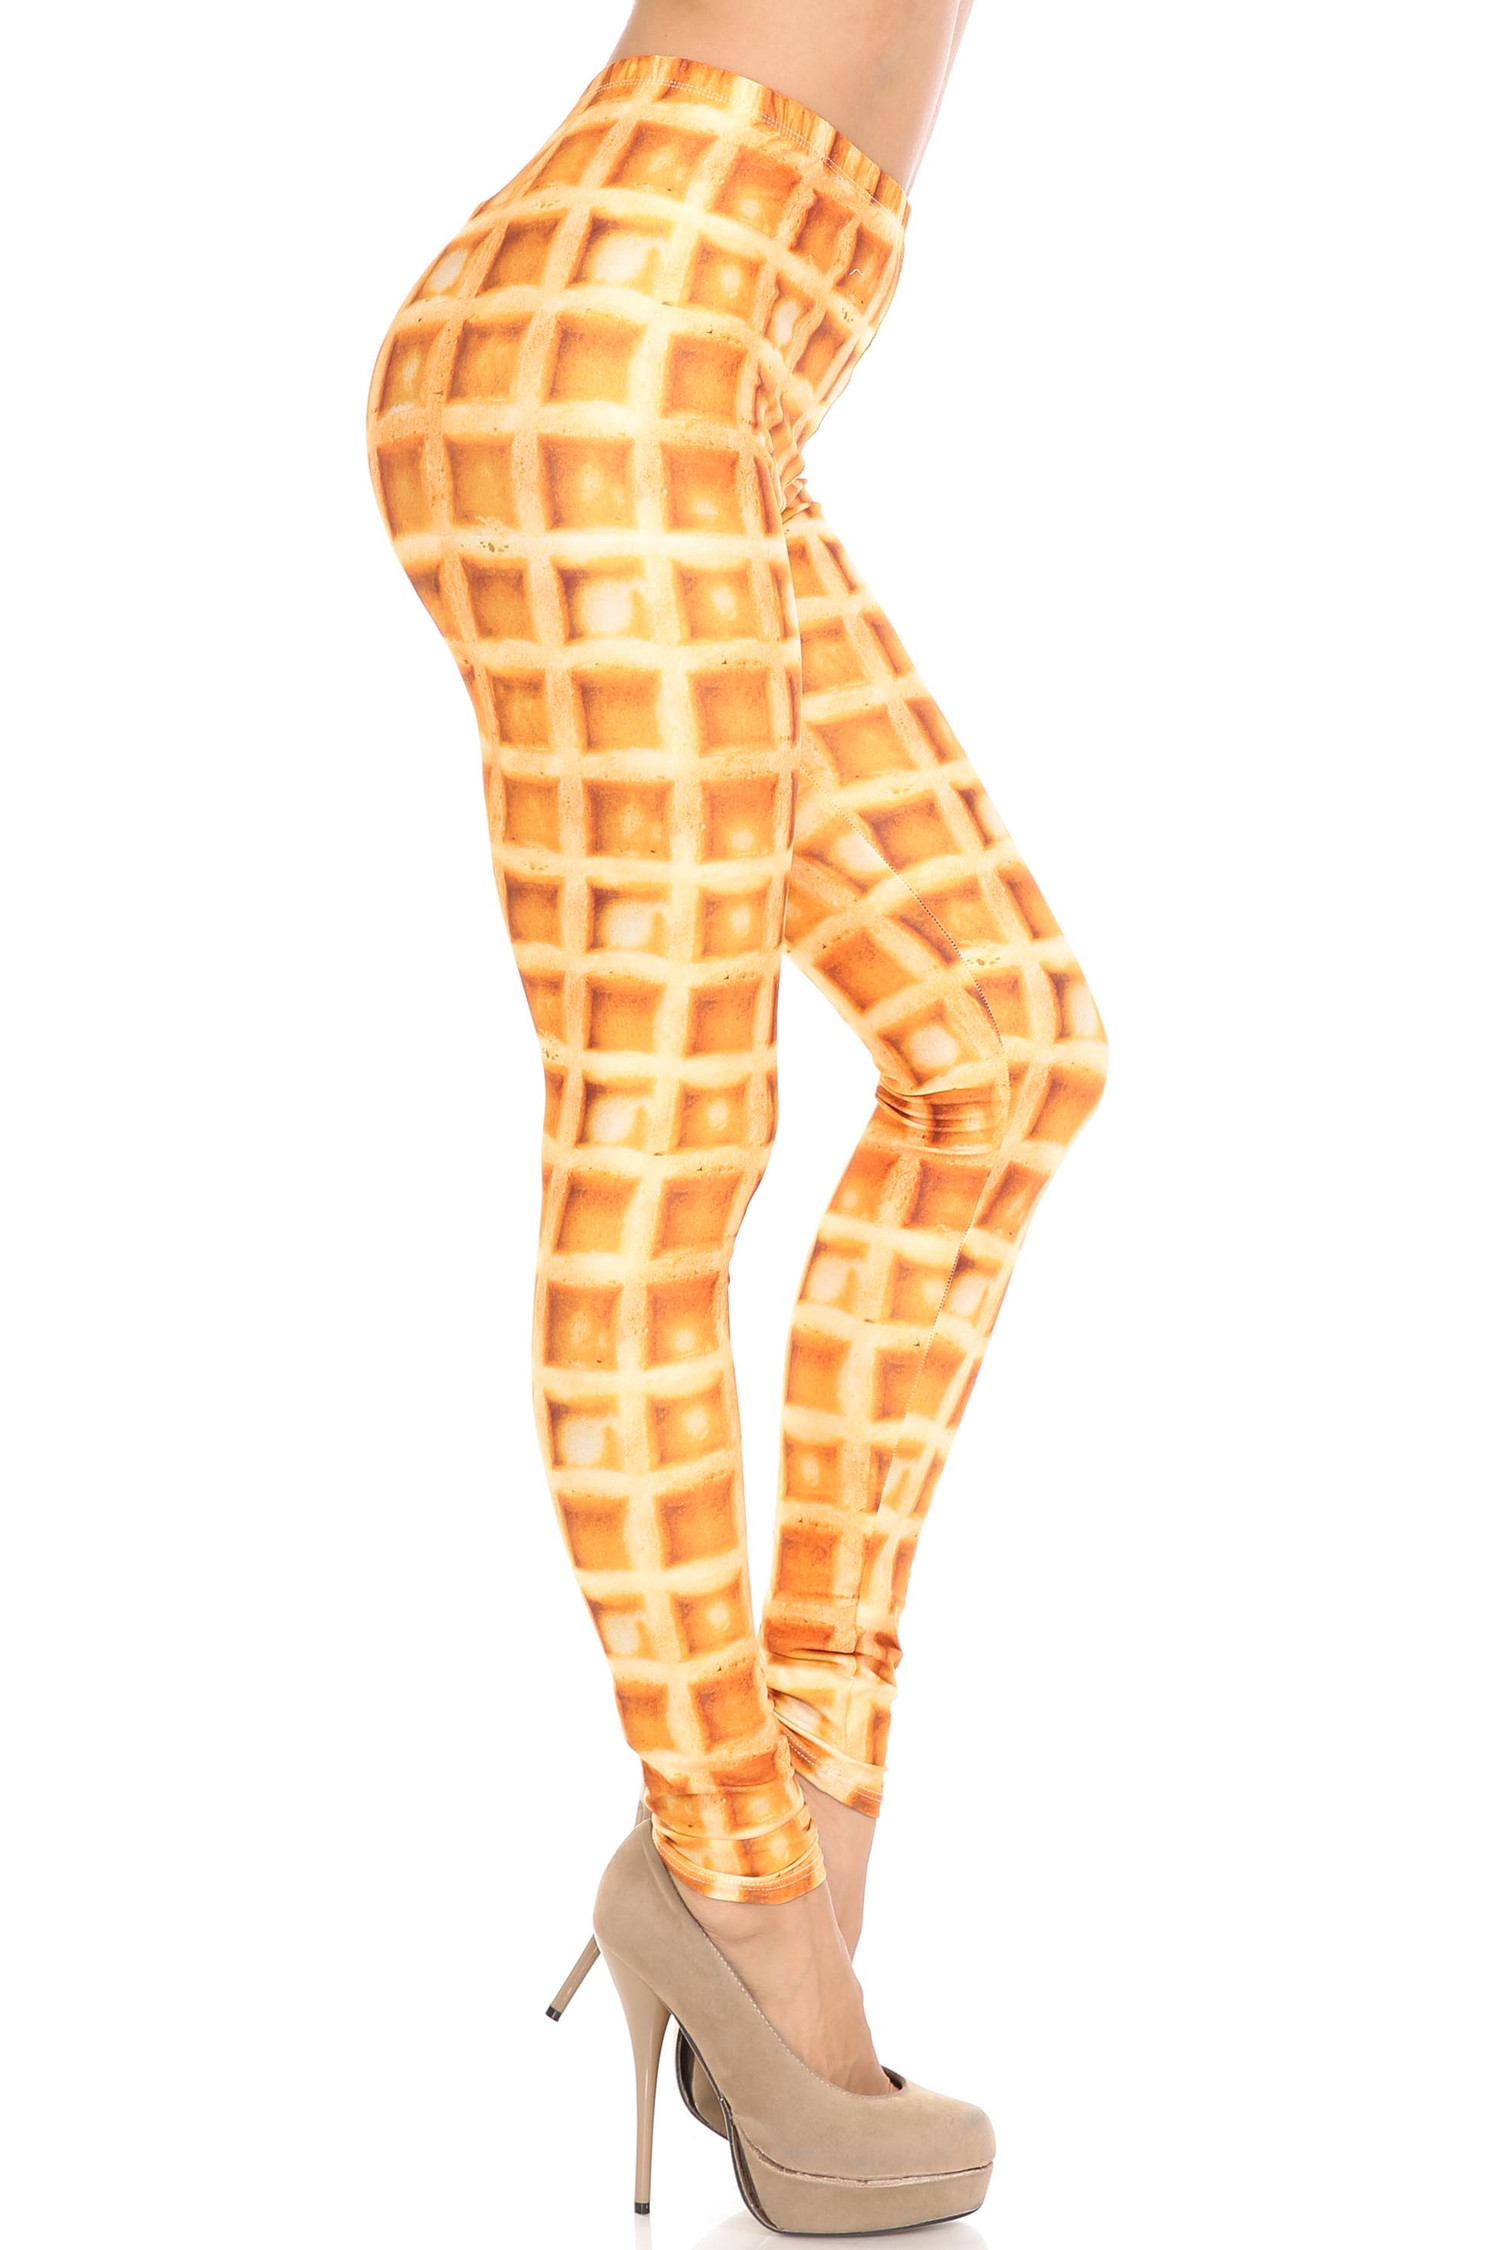 Creamy Soft Waffle Leggings - By USA Fashion™